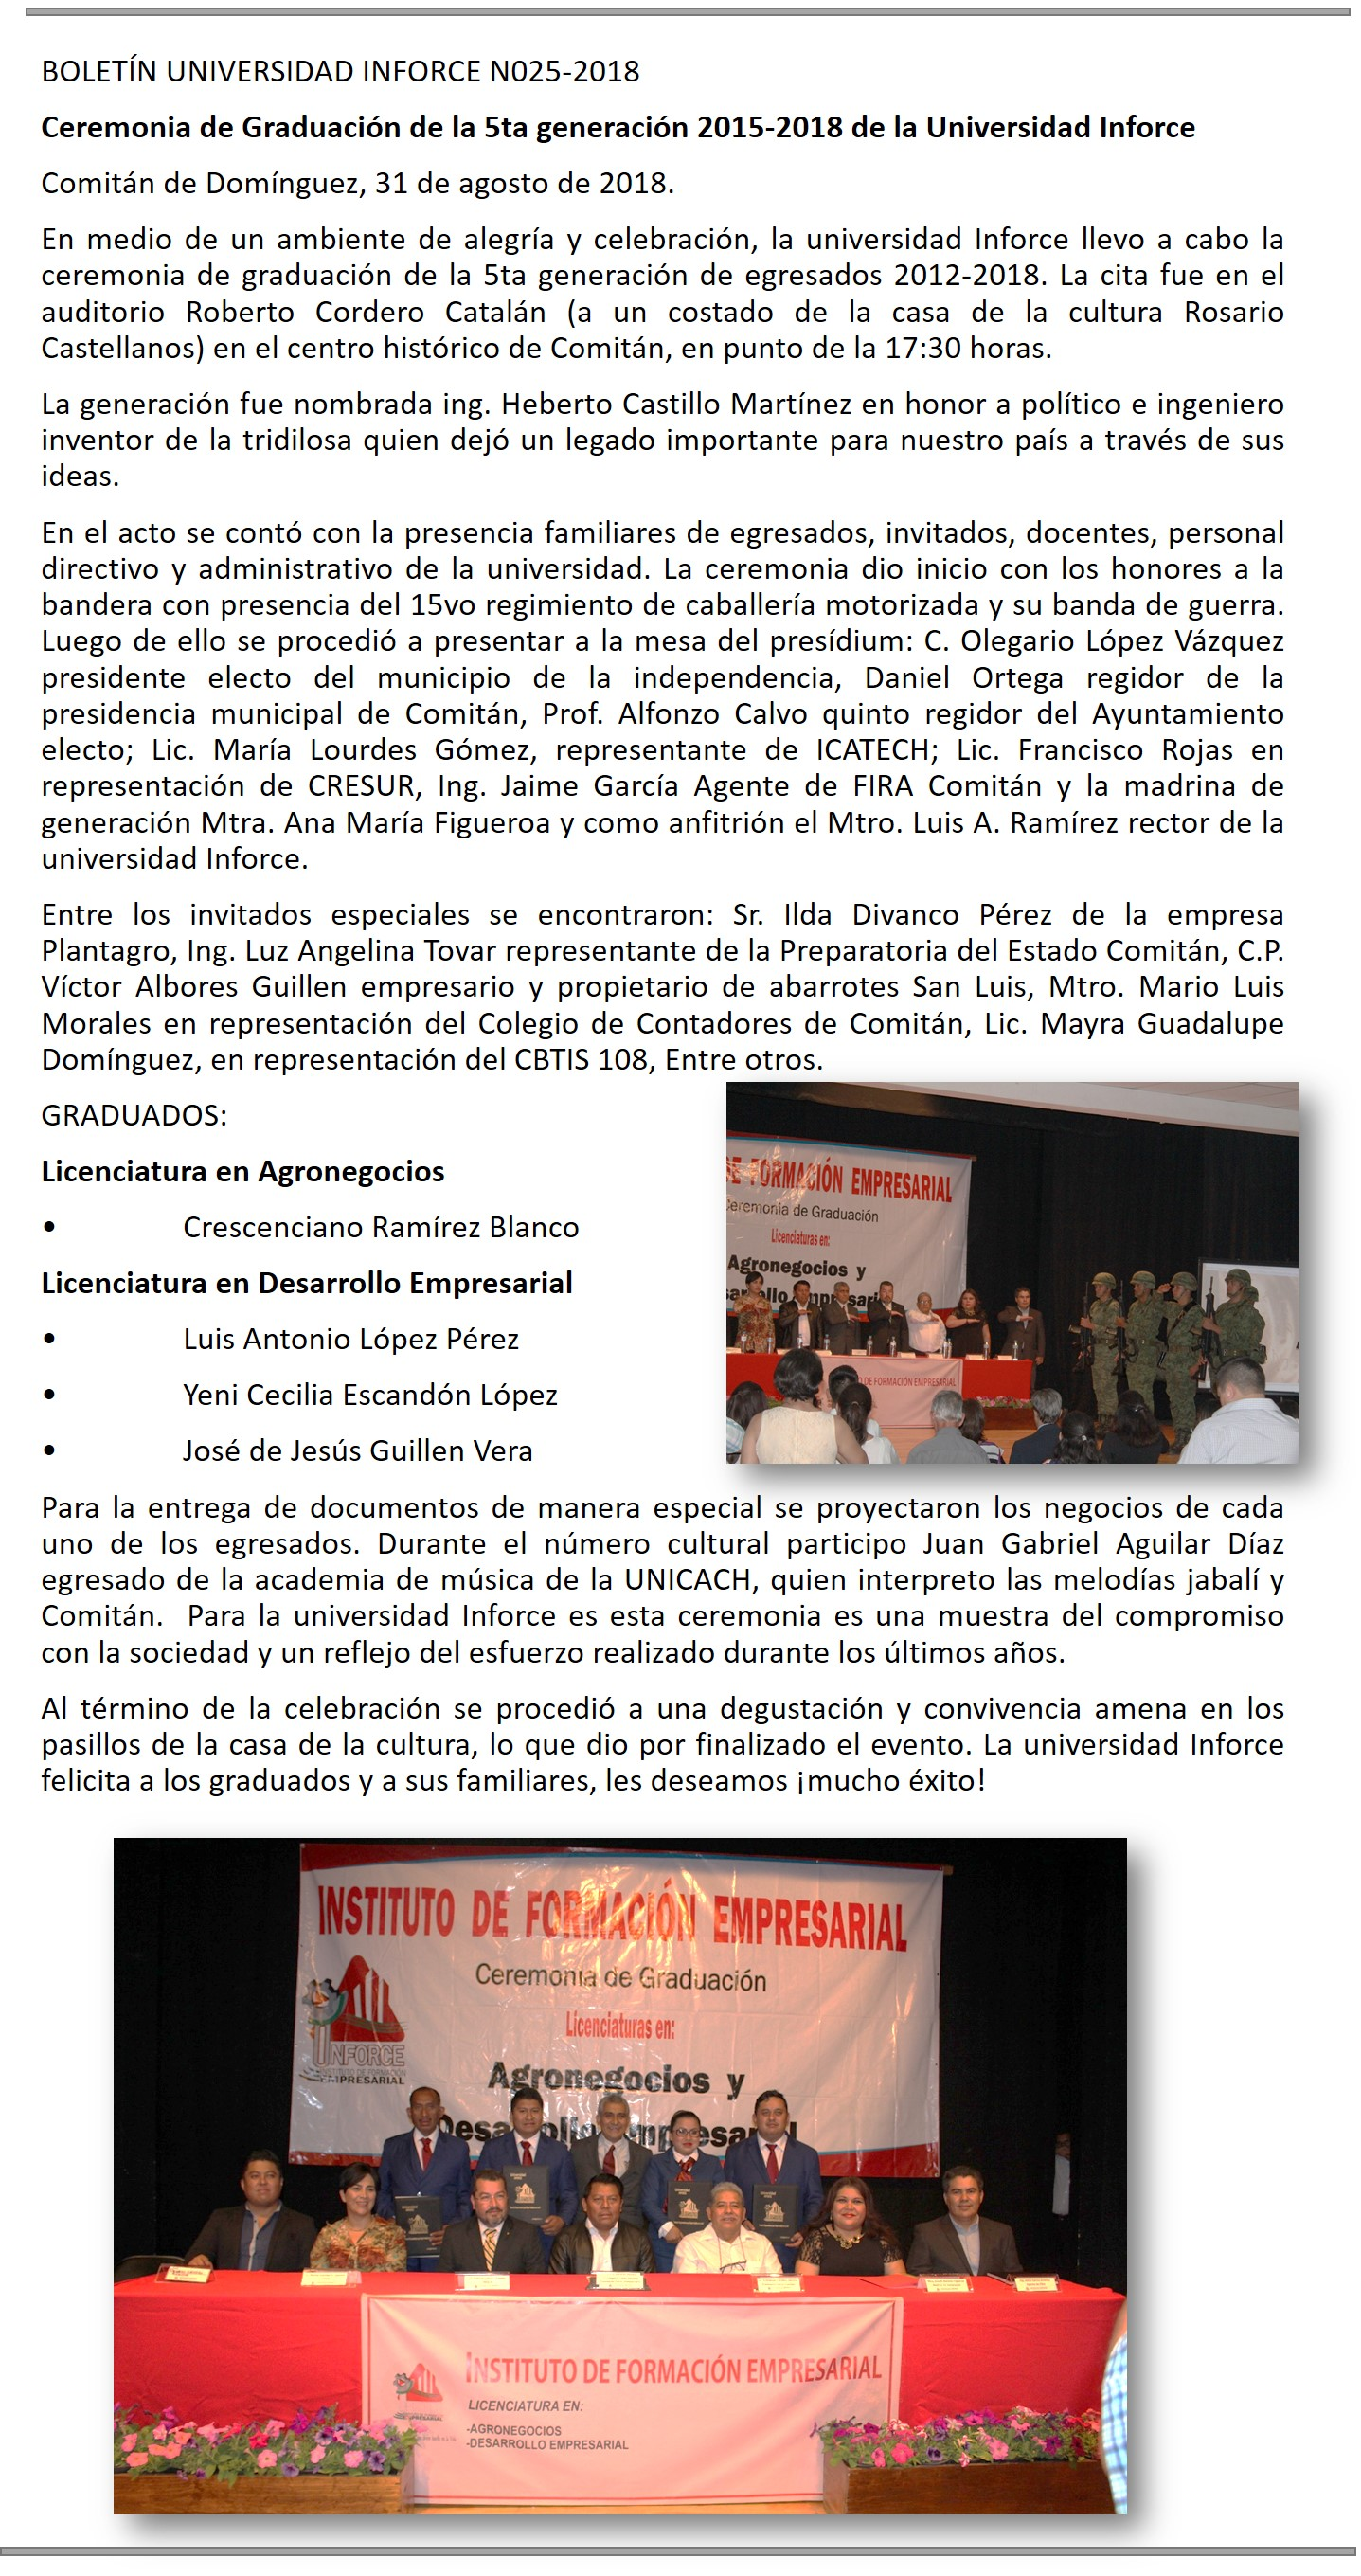 boletin-universidad-inforce-n025-2018.jpg